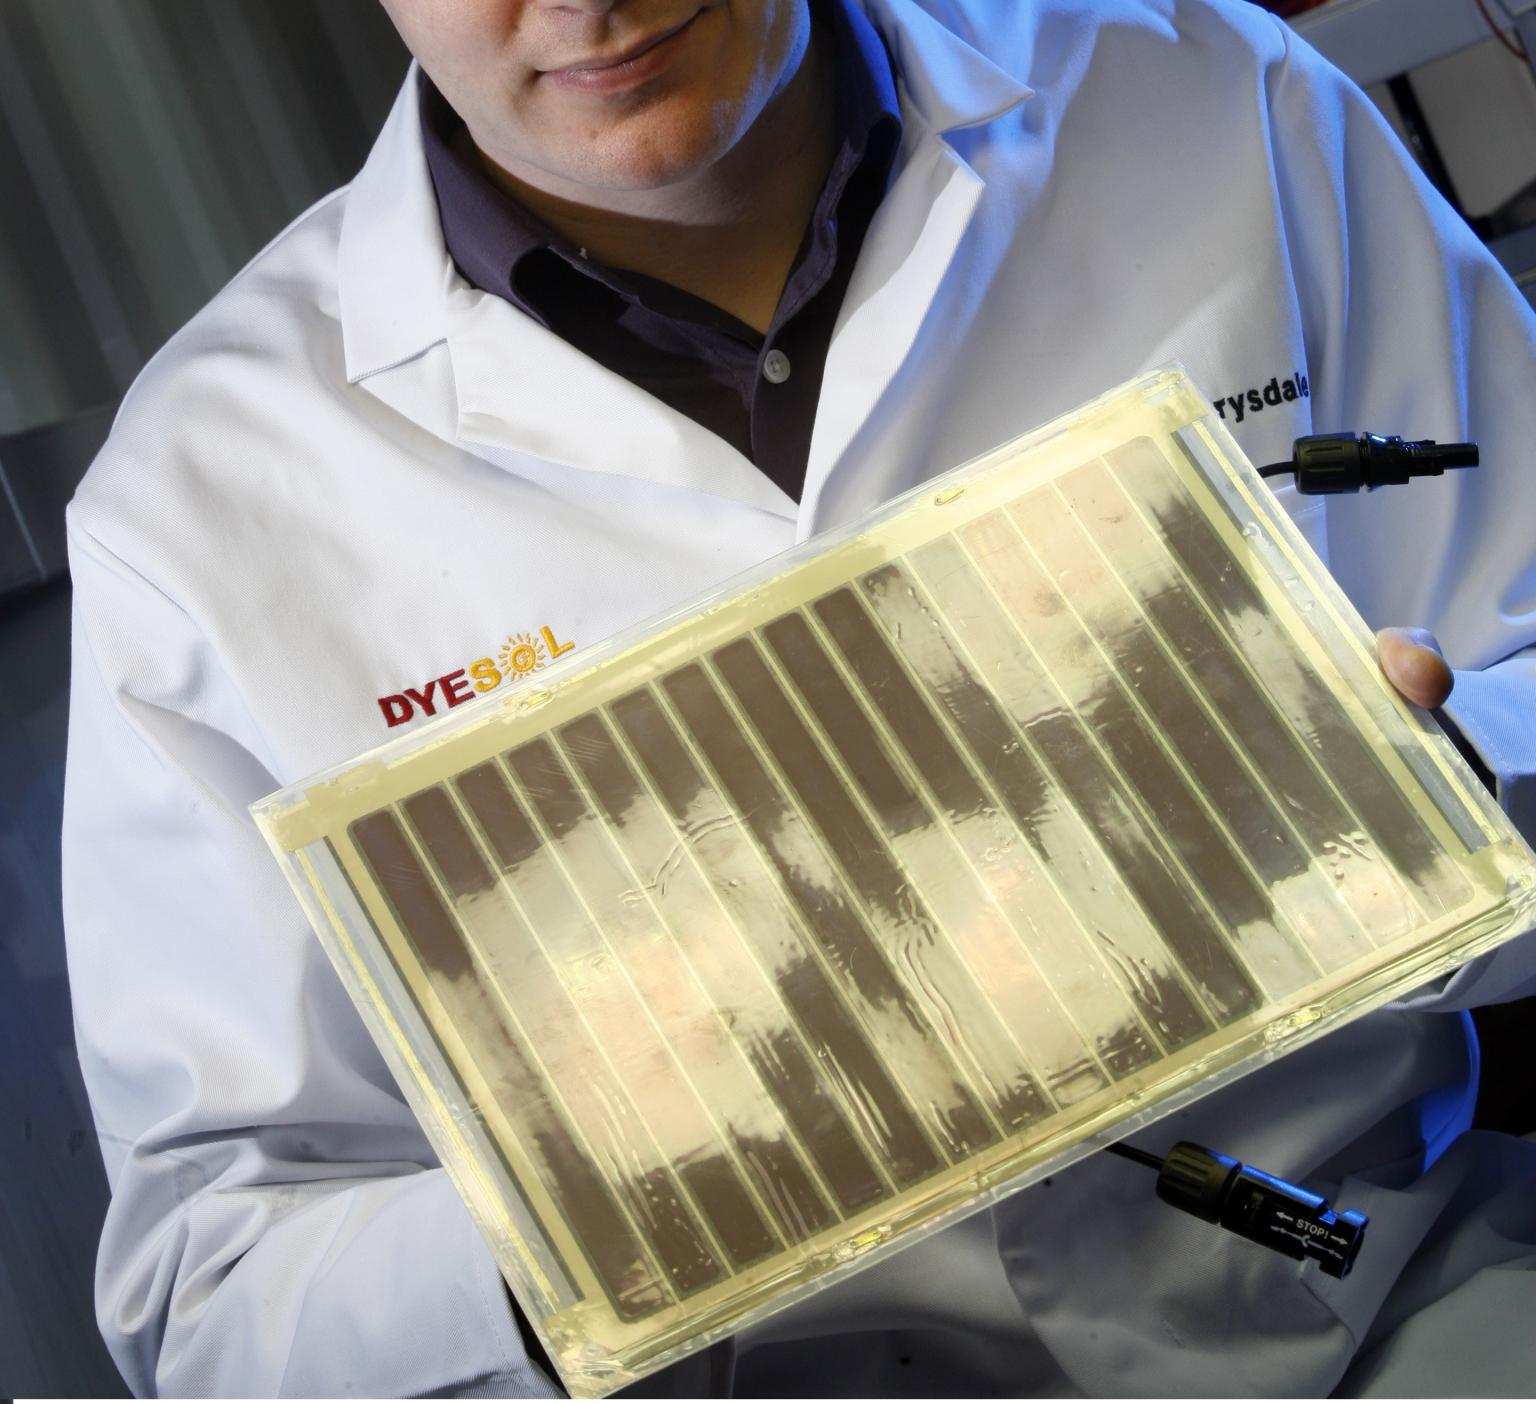 Dyesol produces solid-state dye-sensitised solar cells